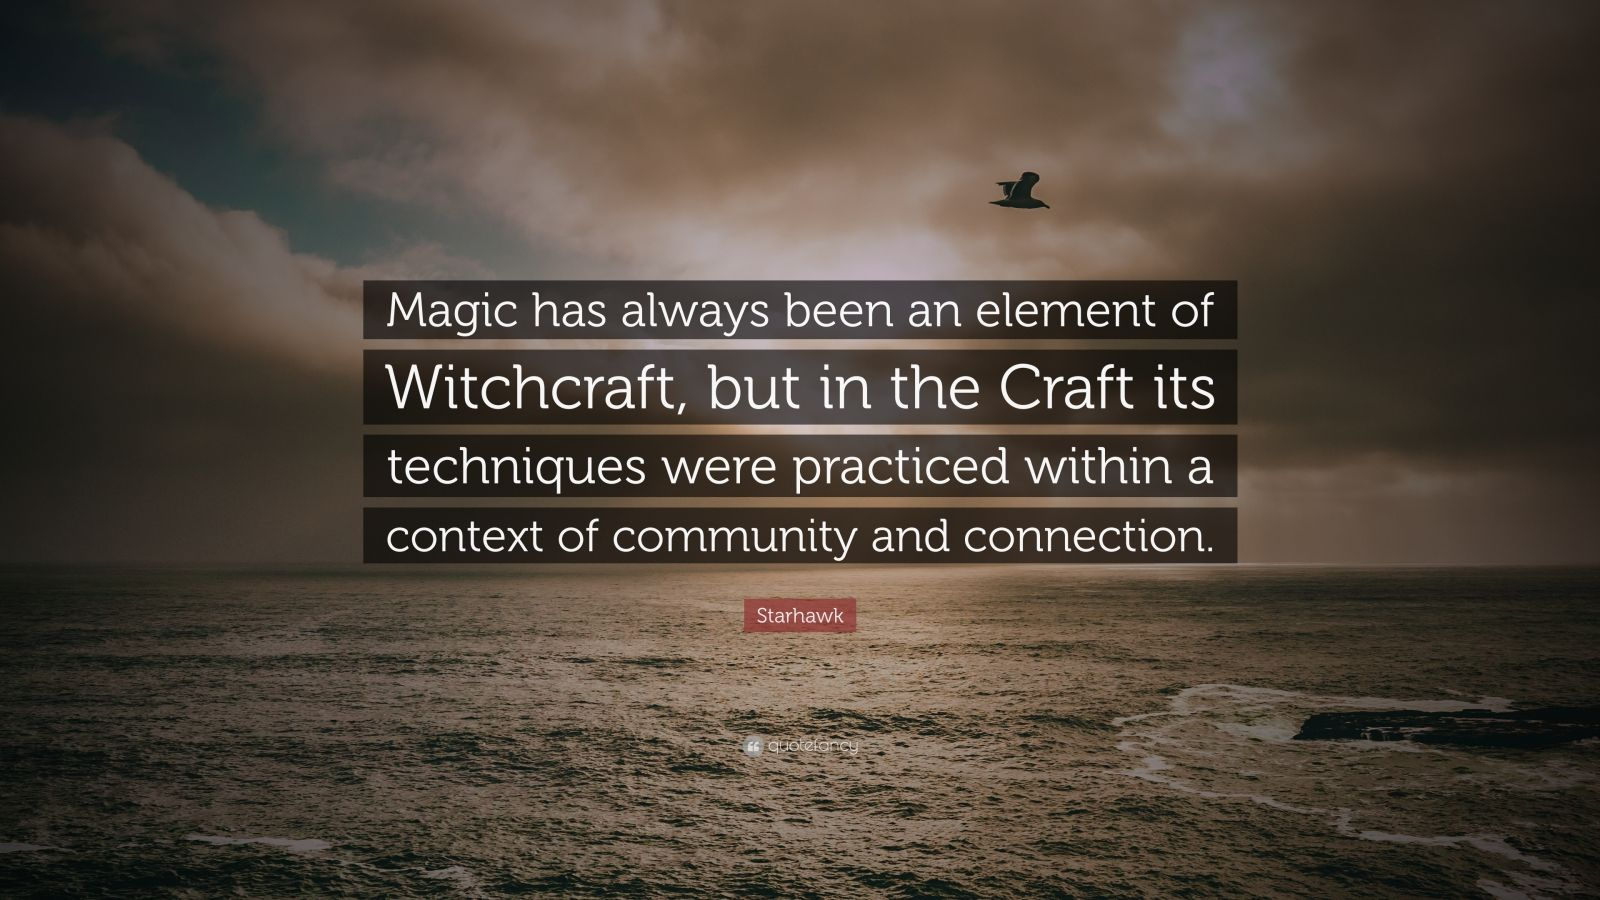 """Starhawk Quote: """"Magic has always been an element of Witchcraft, but in the Craft its techniques were practiced within a context of community and connection."""""""